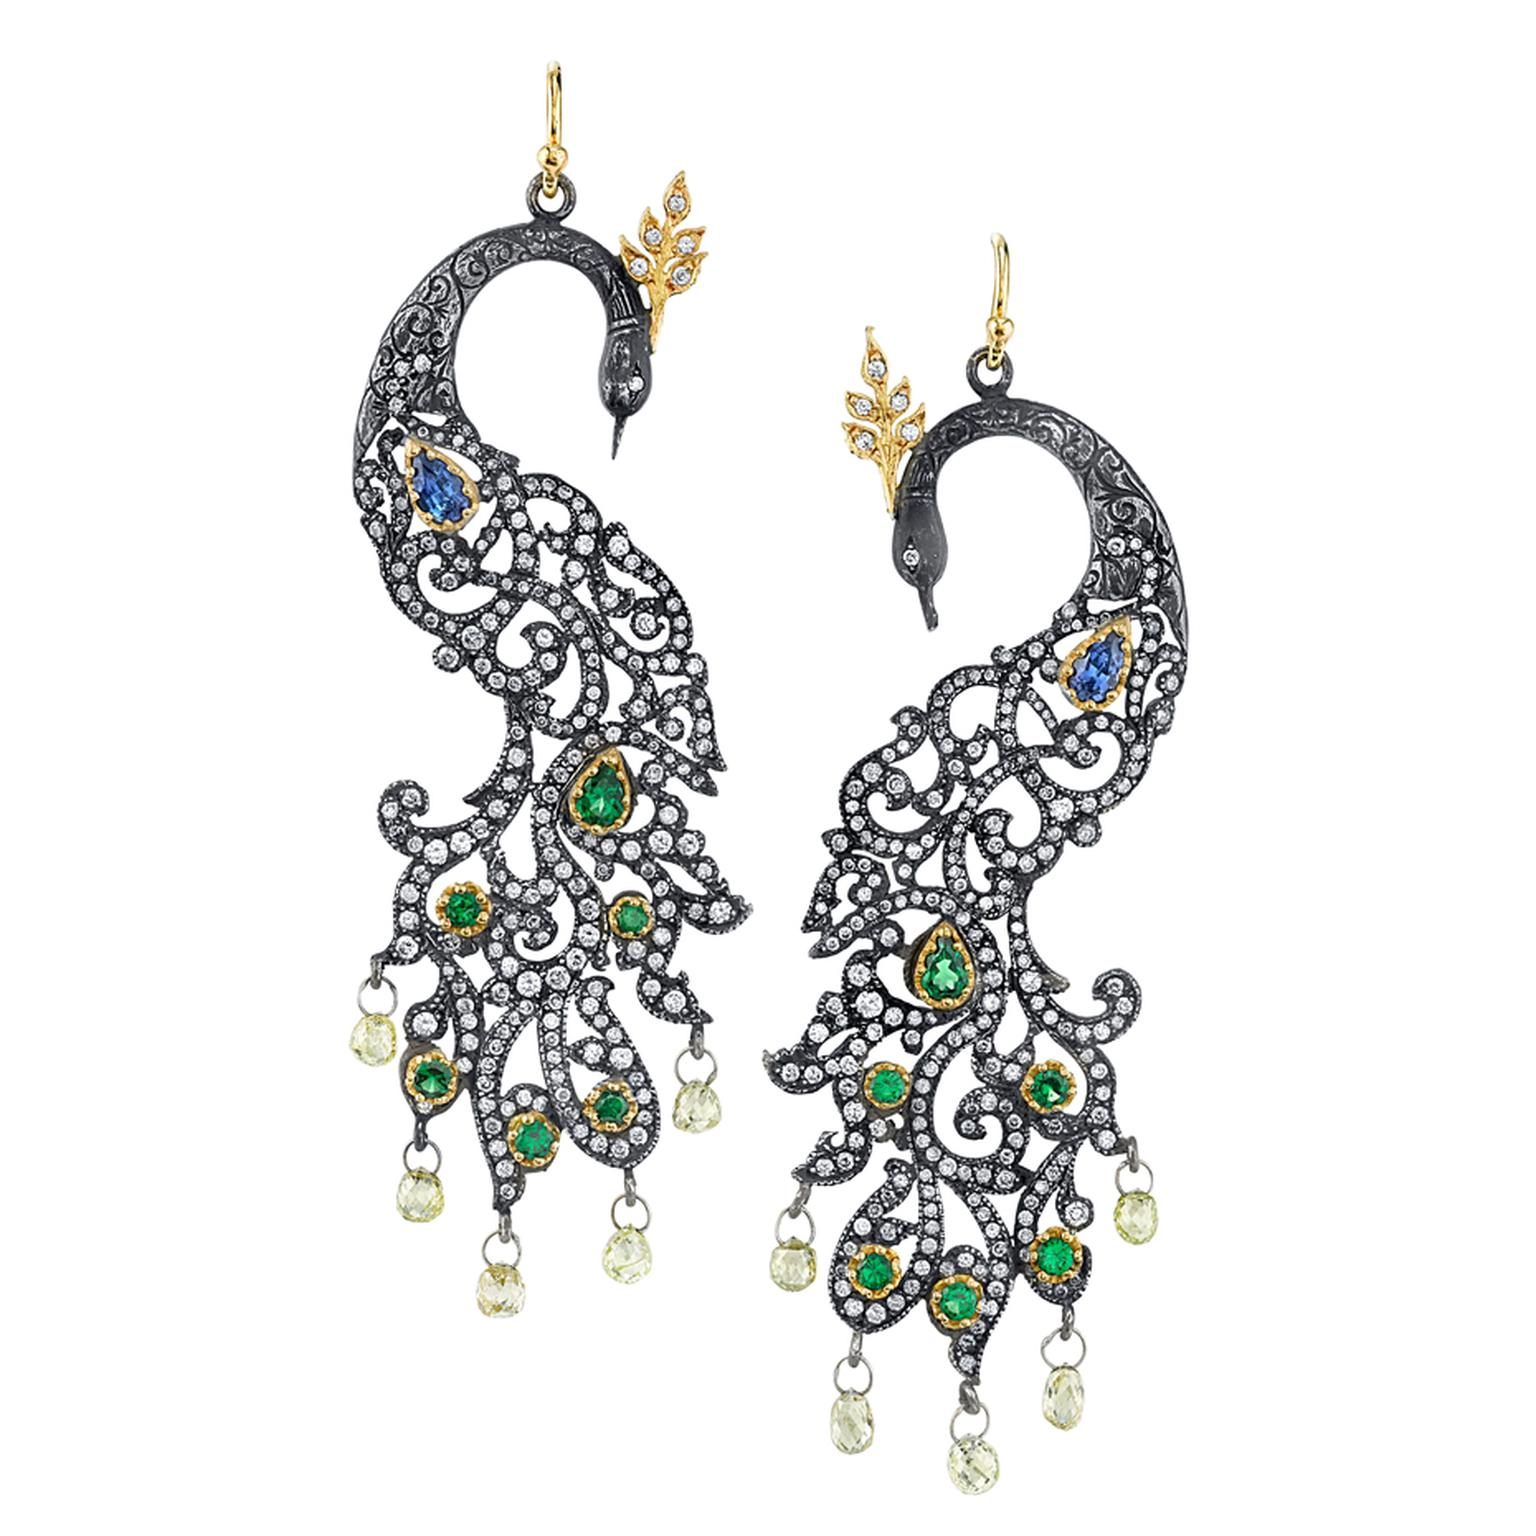 Arman Sarkisyan Peacock earrings with tanzanite, tsavorite, diamonds and oxidised silver.